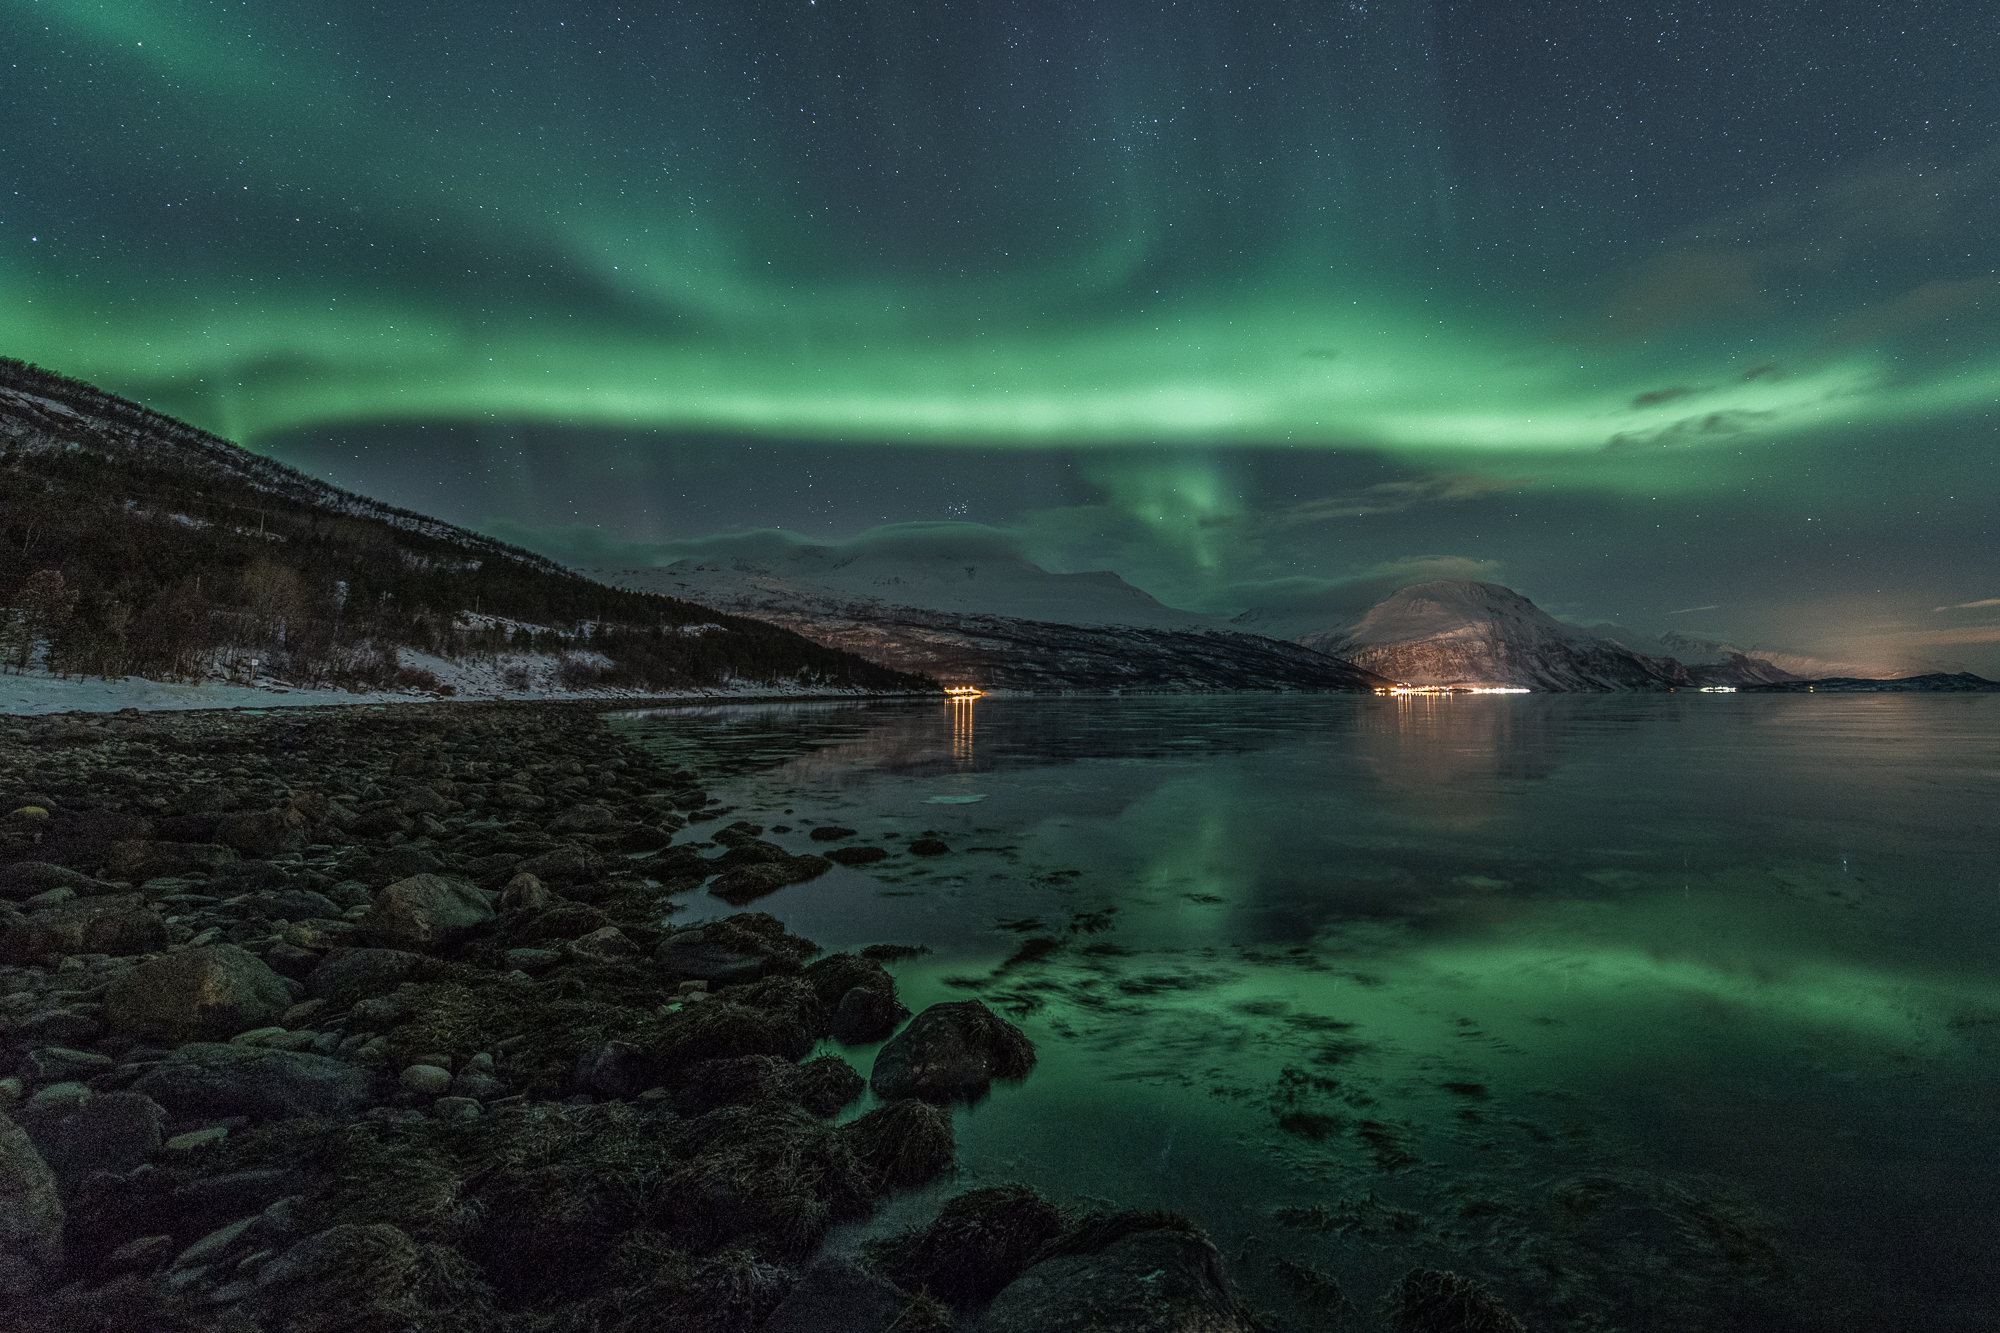 Afternoon auroras in the polar night in Lapland